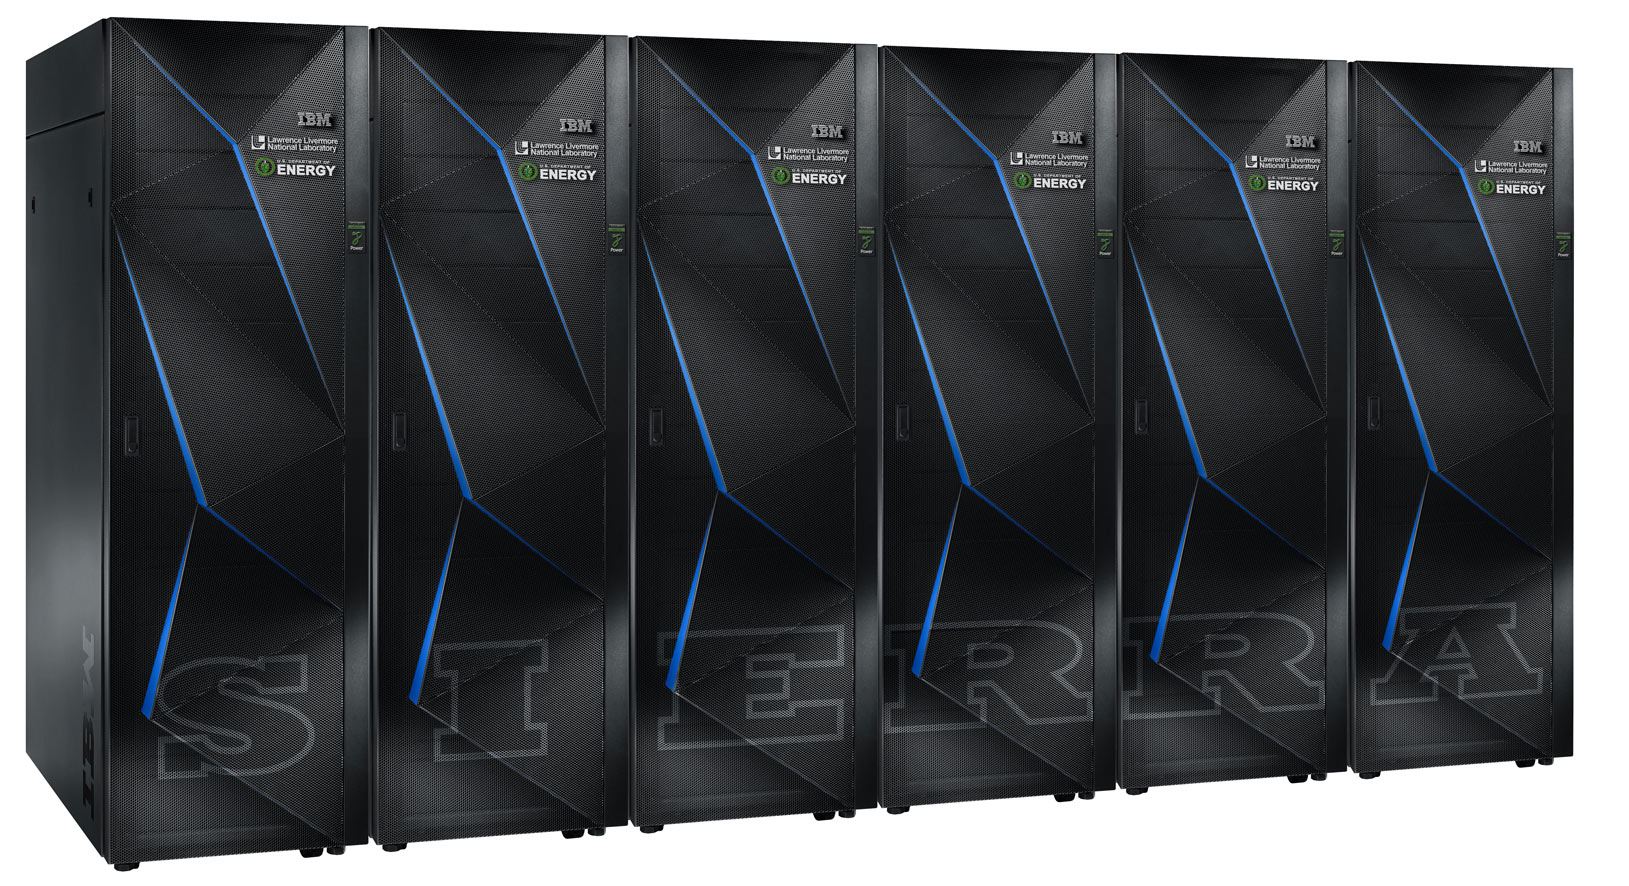 This rendering shows a few of the cabinets that ultimatly will comprise IBM's Sierra supercomputer at Lawrence Livermore National Laboratory.